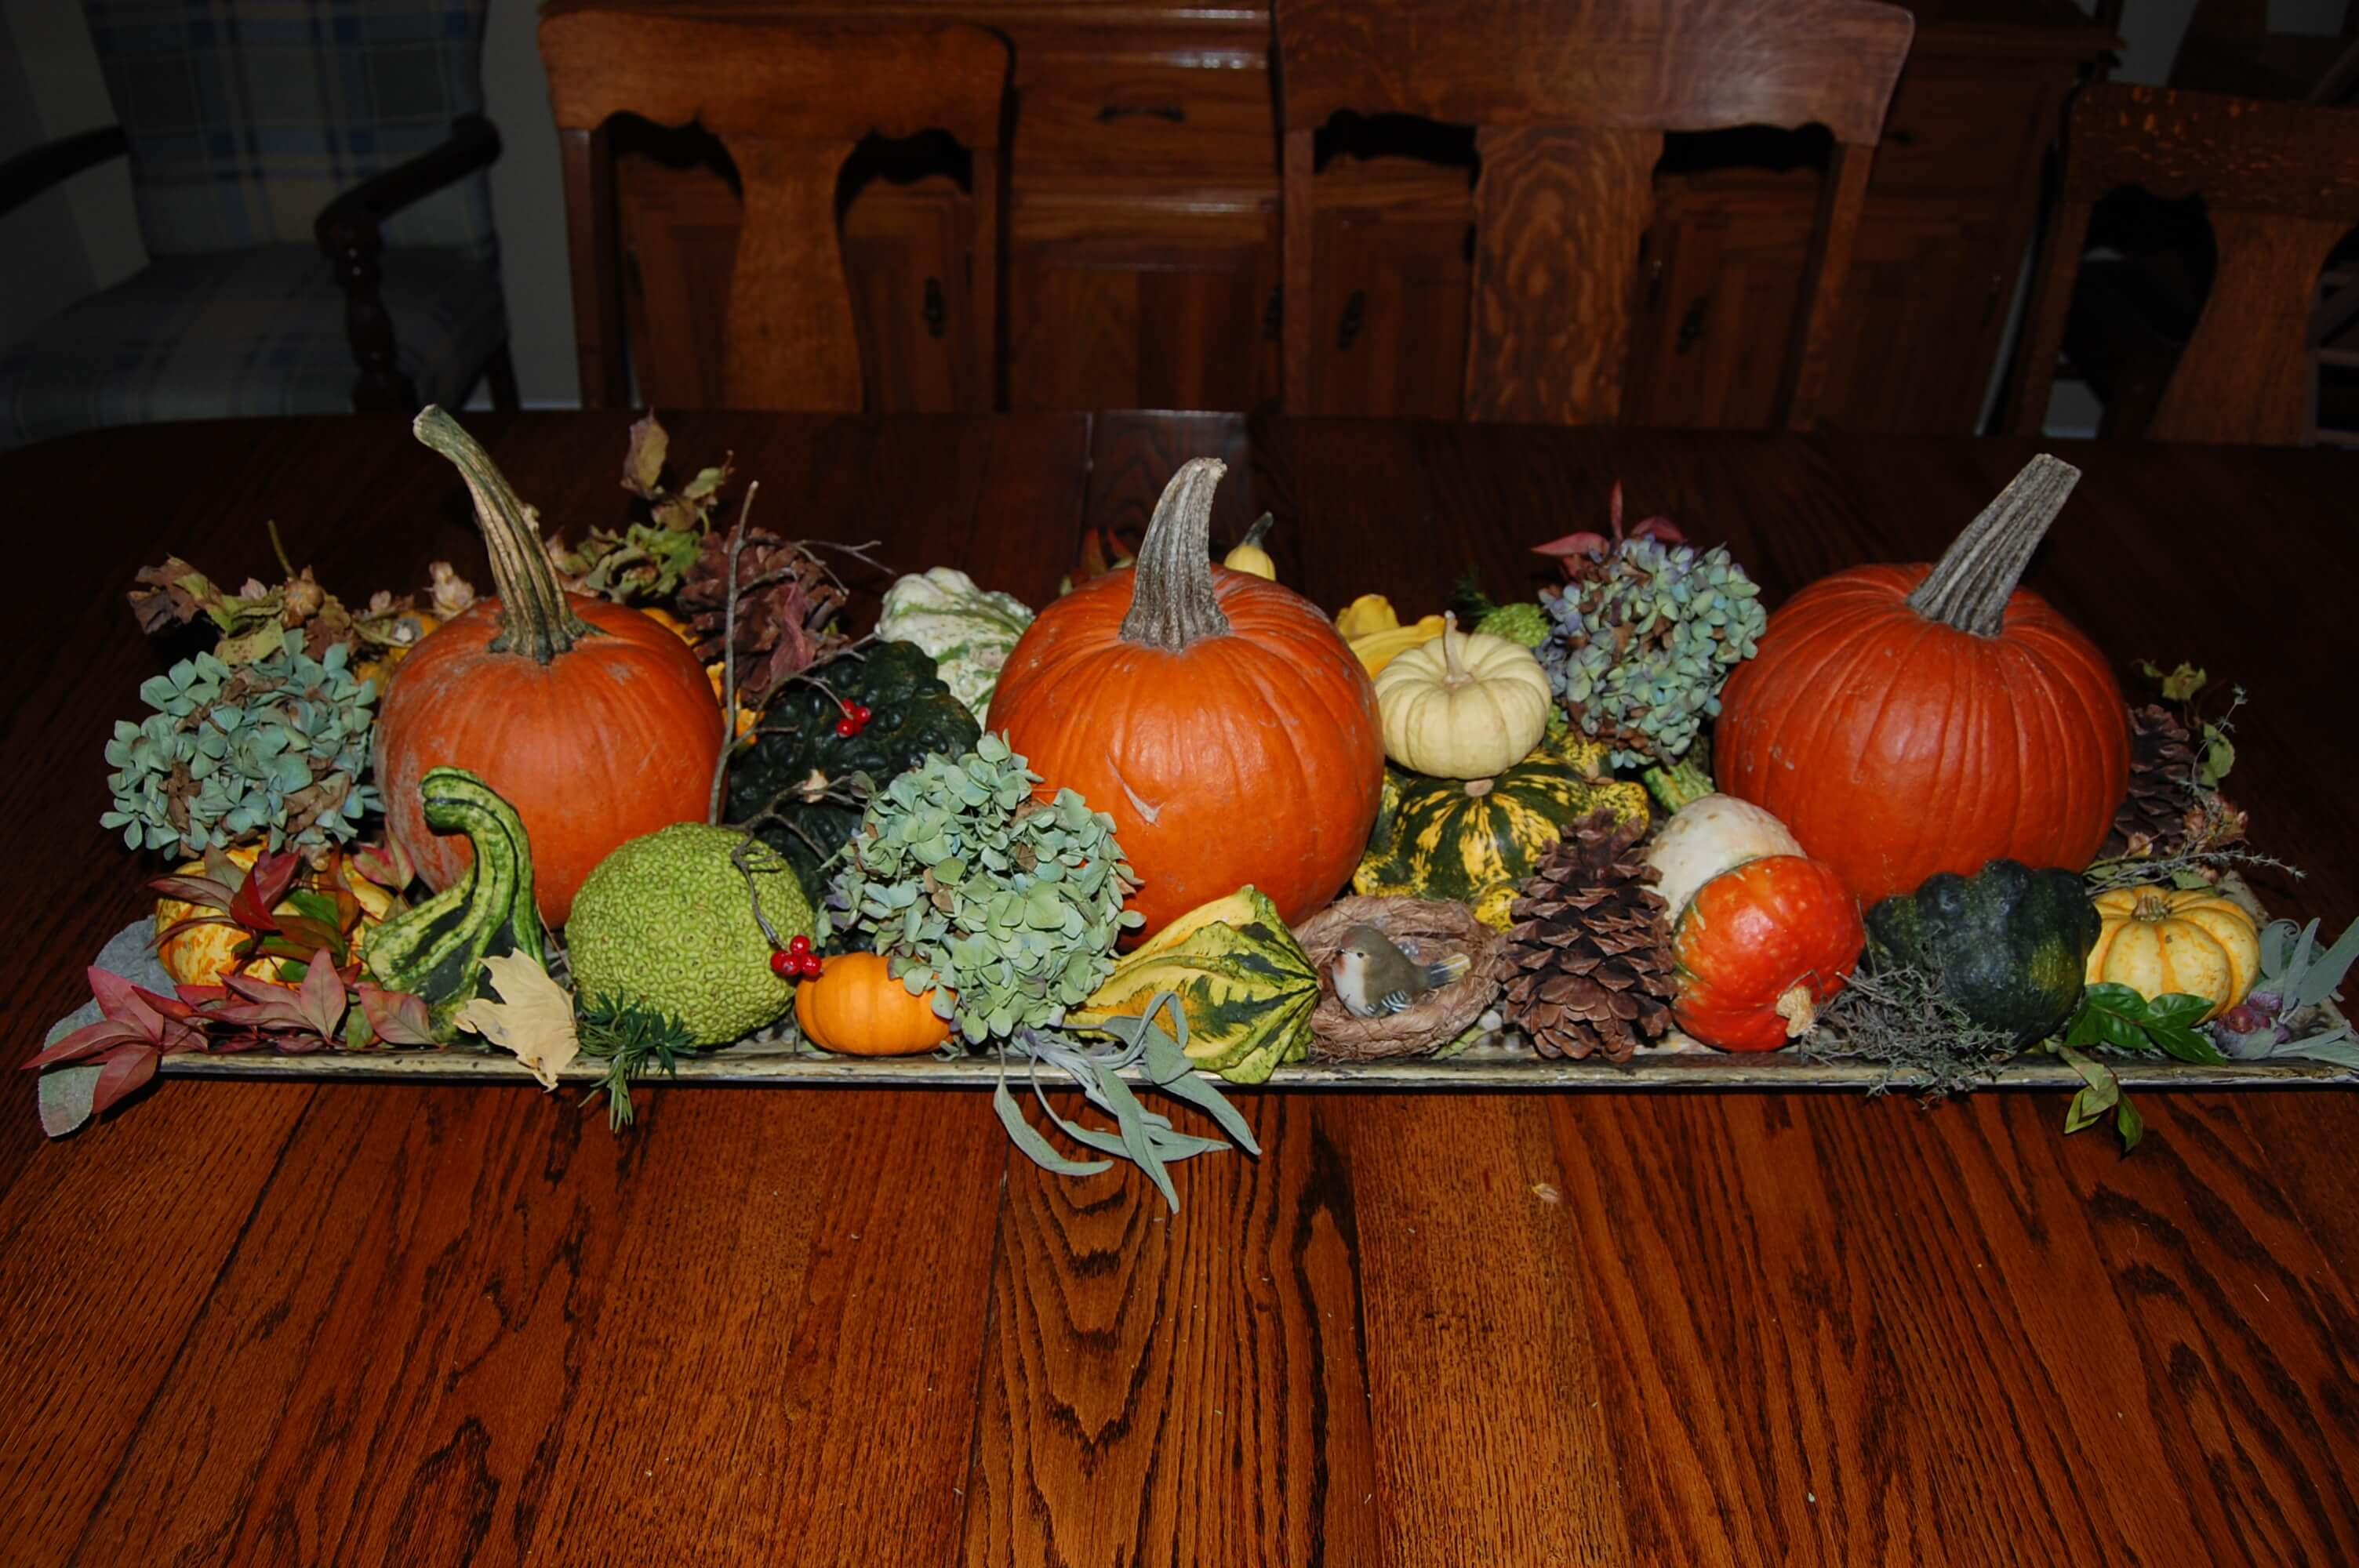 Home decor in the form of DIY interior gourds